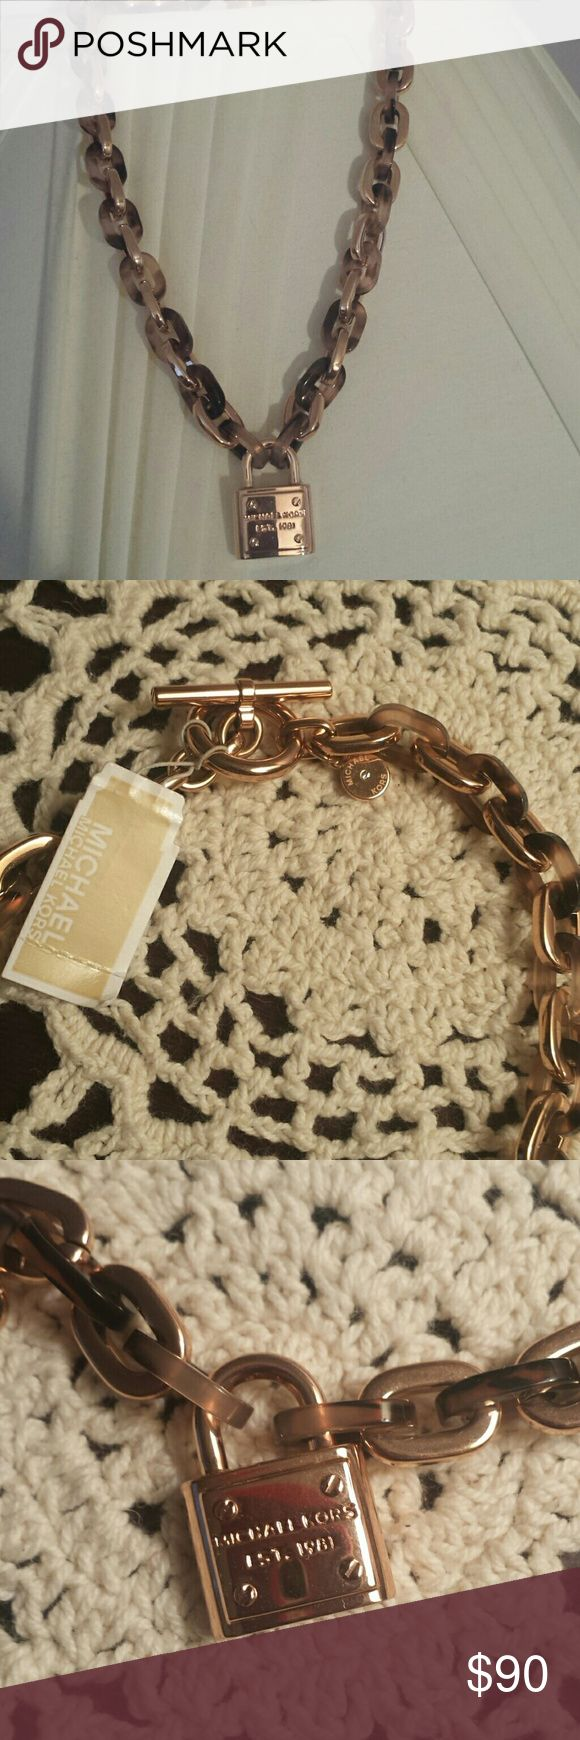 Michael Kors Heritage Padlock Necklace Gorgeous  Michael Kors heritage padlock necklace. Inter locking links alternating between rose gold and tortoise, toggle closure and padlock at the center. Michael Kors Jewelry Necklaces